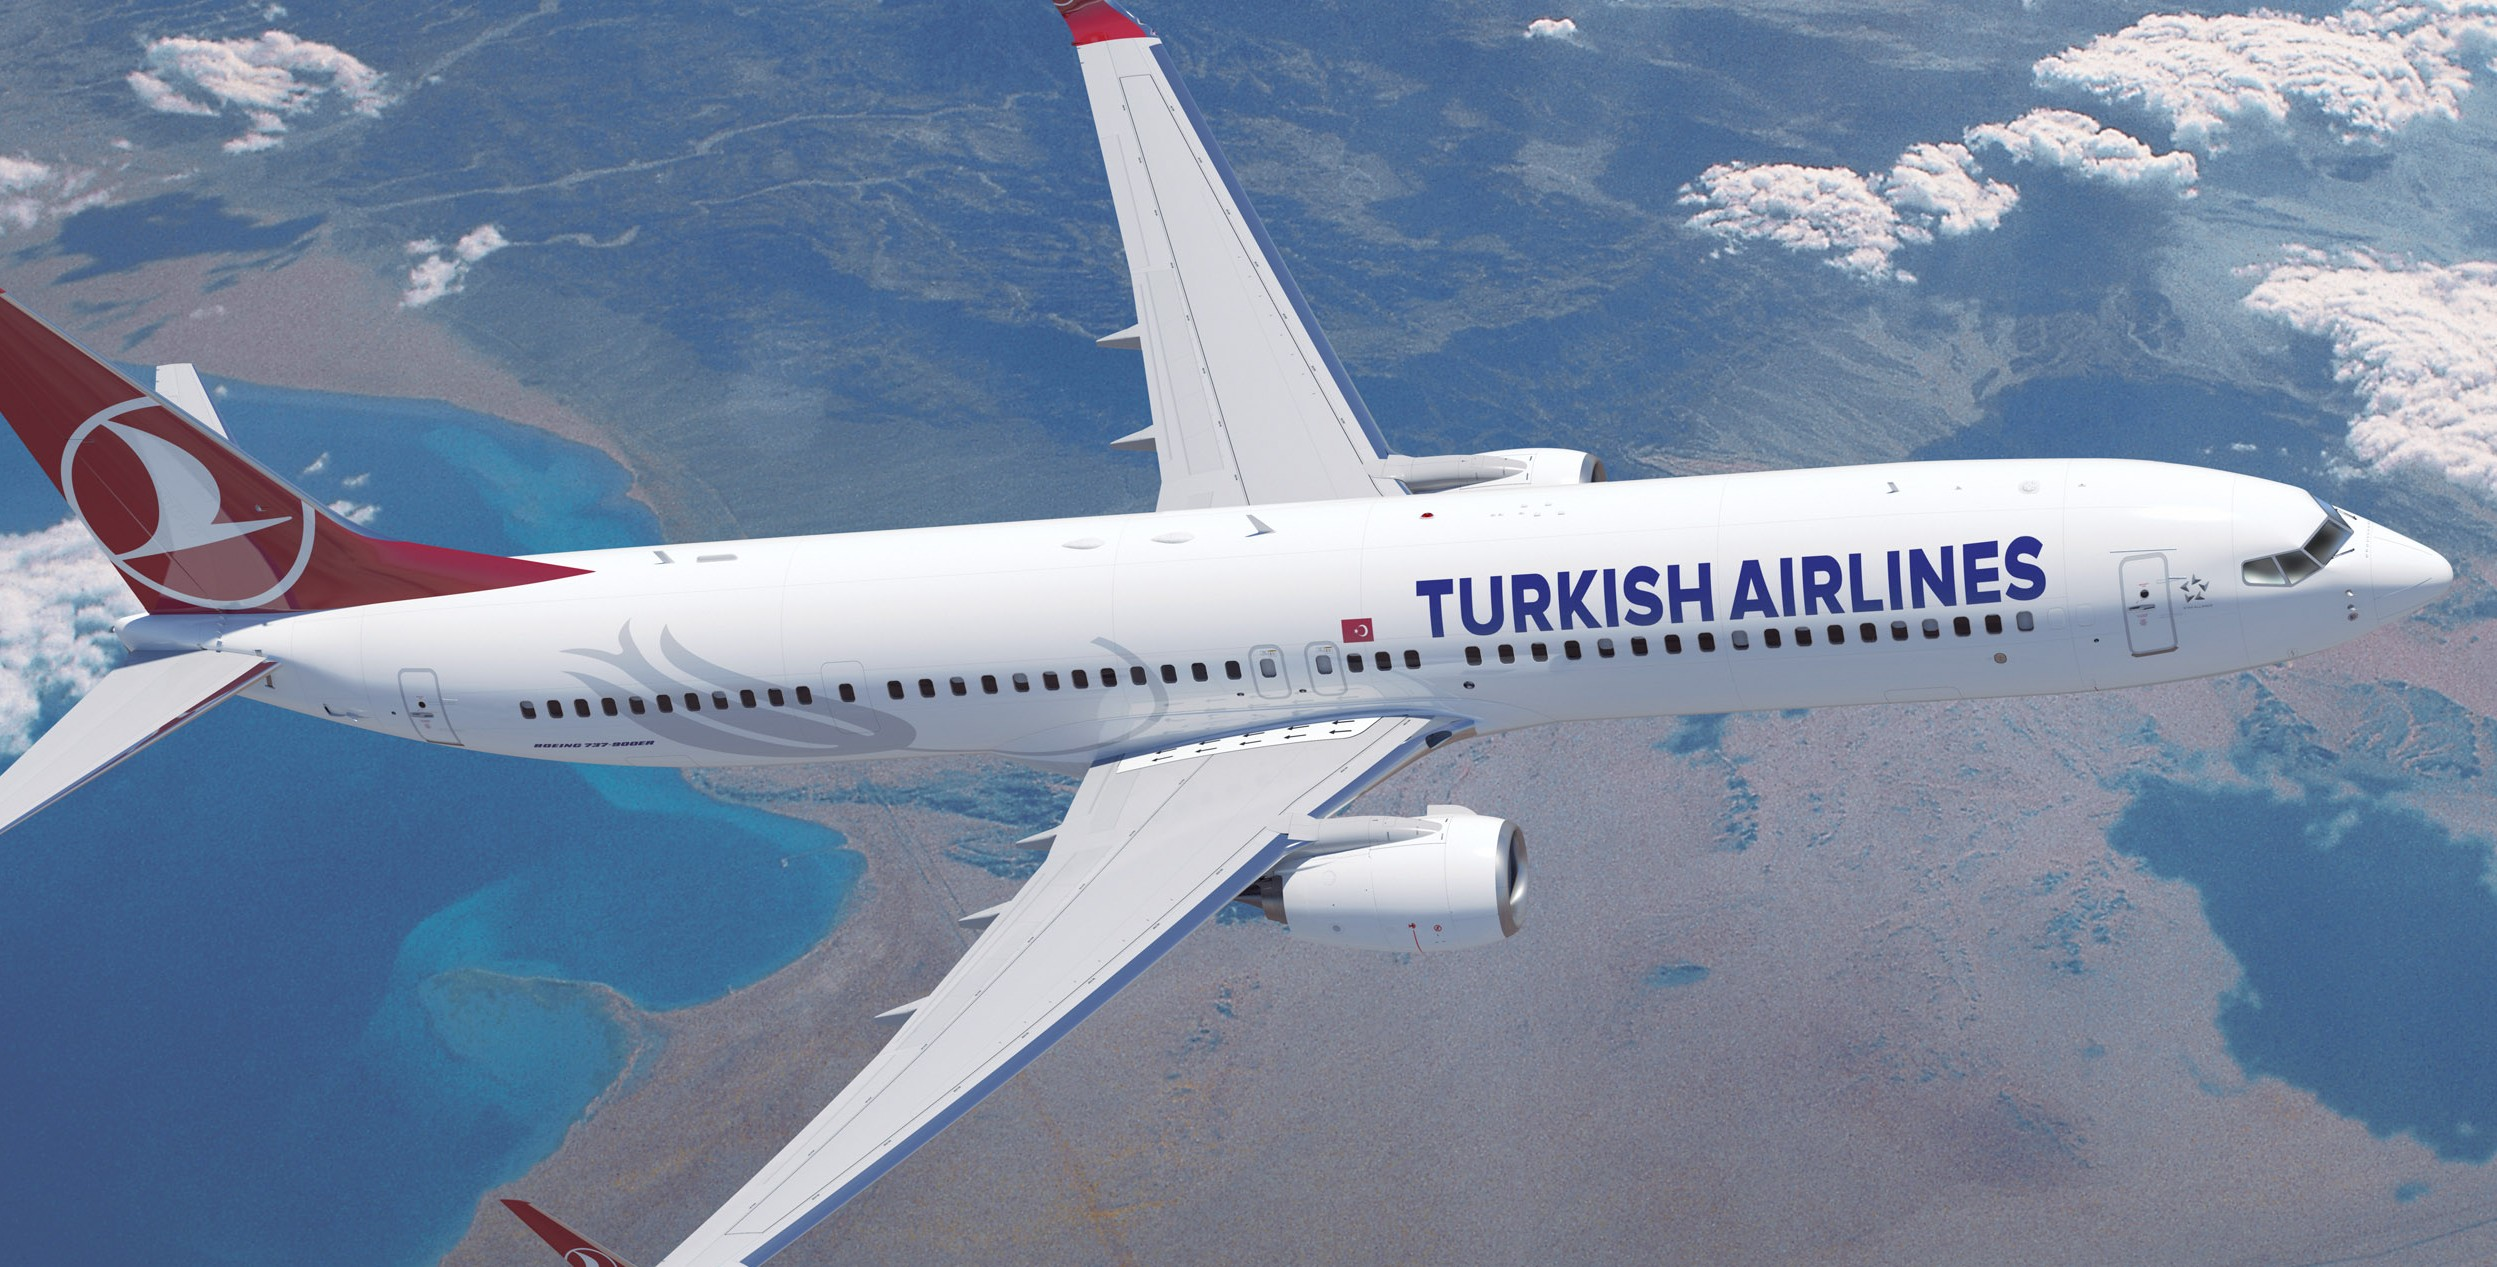 Turkish Airlines 01